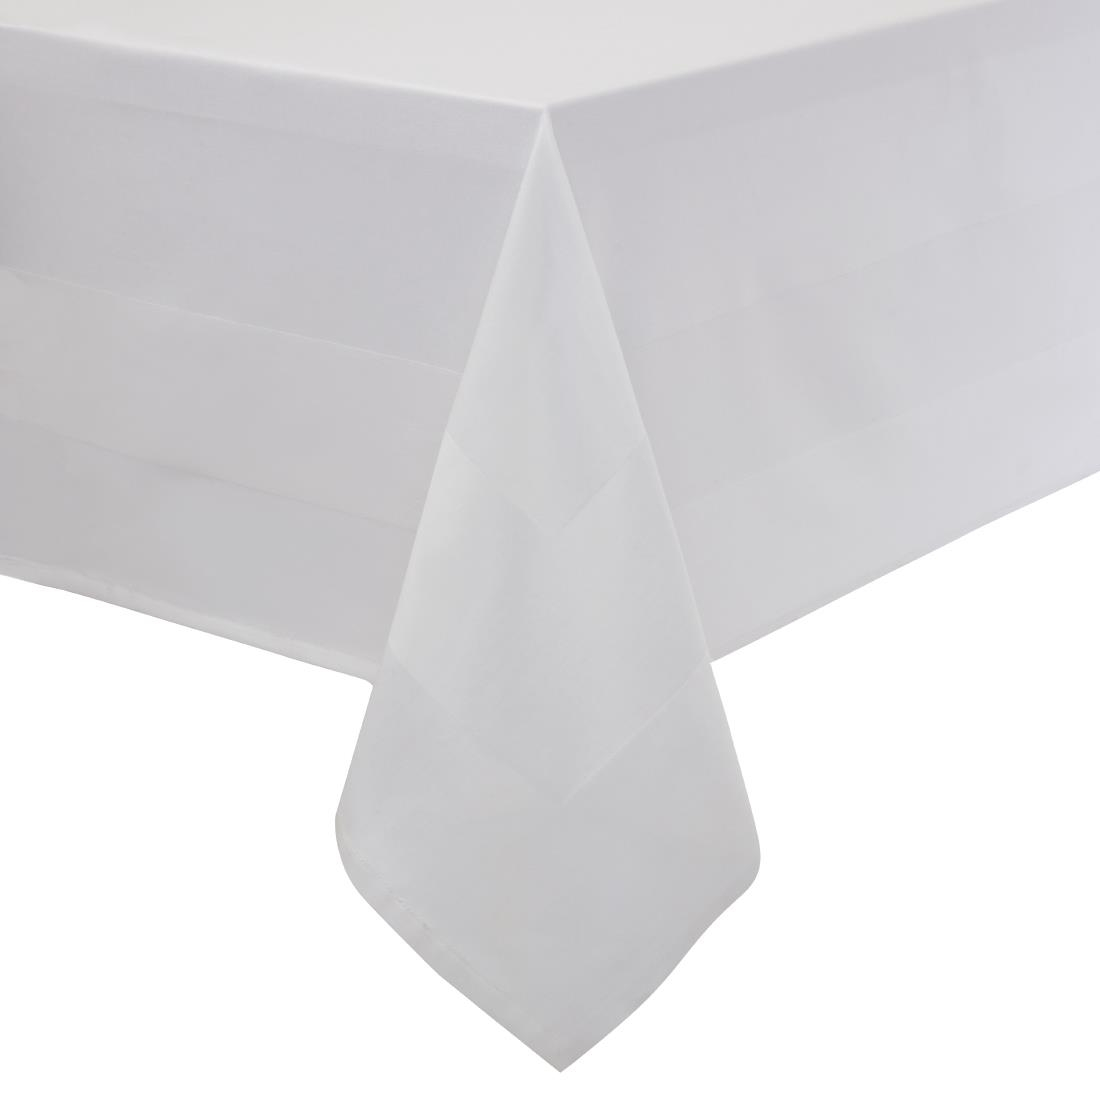 Image of Mitre Luxury Satin Band Tablecloth 1780 x 3650mm